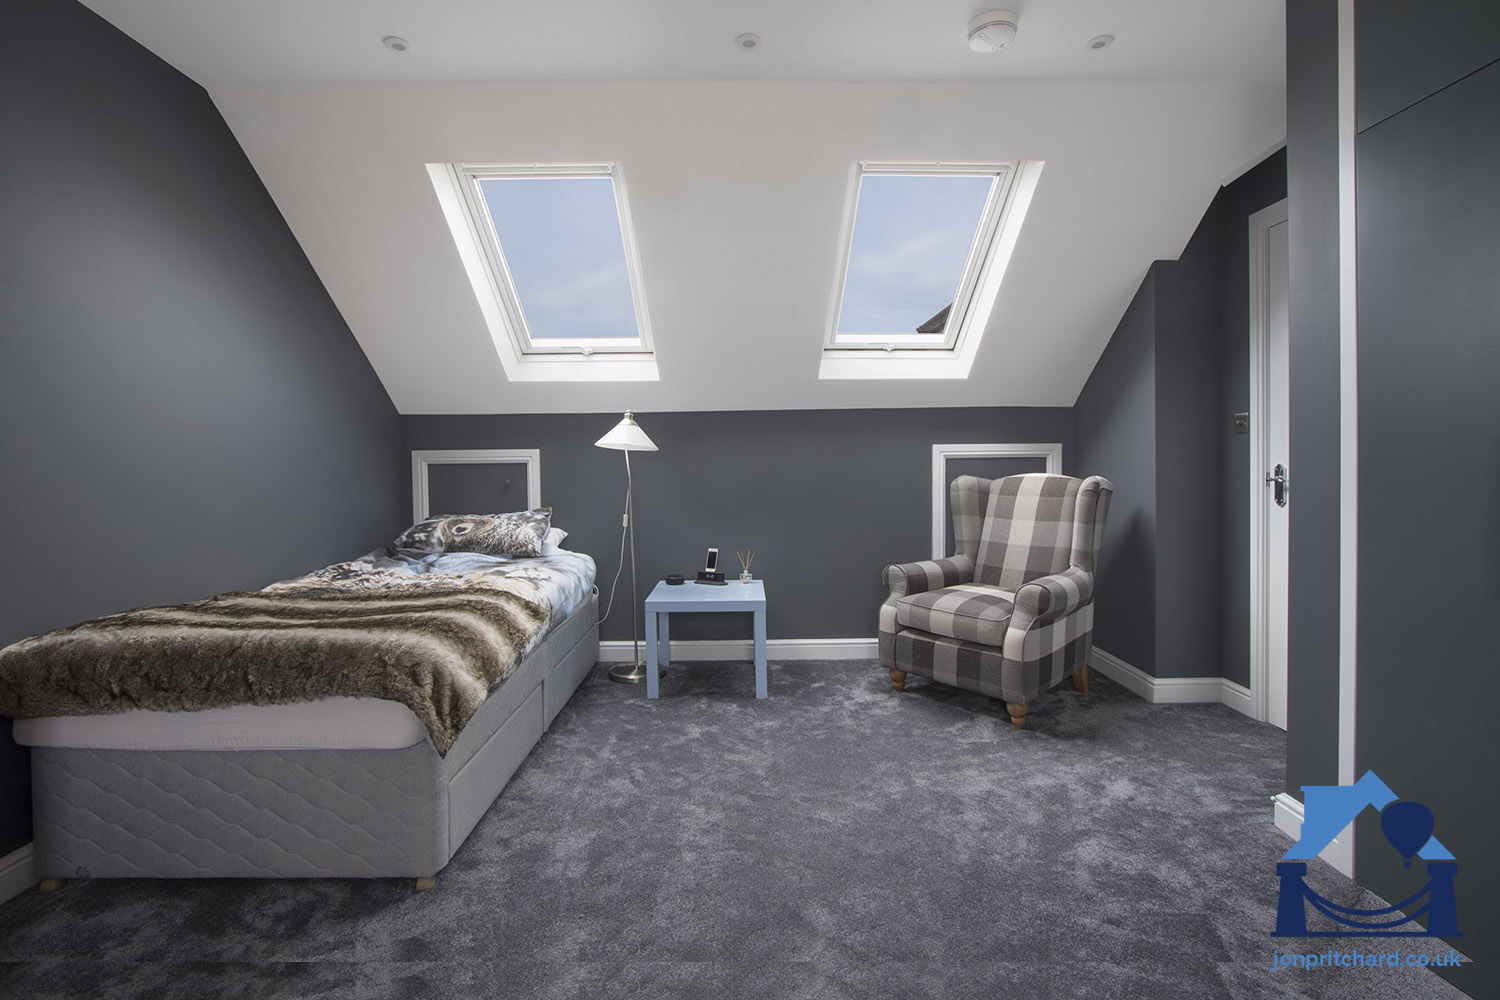 Photo showing a stylish loft conversion bedroom with single bed, armchair, fitted wardrobes and two VELUX windows